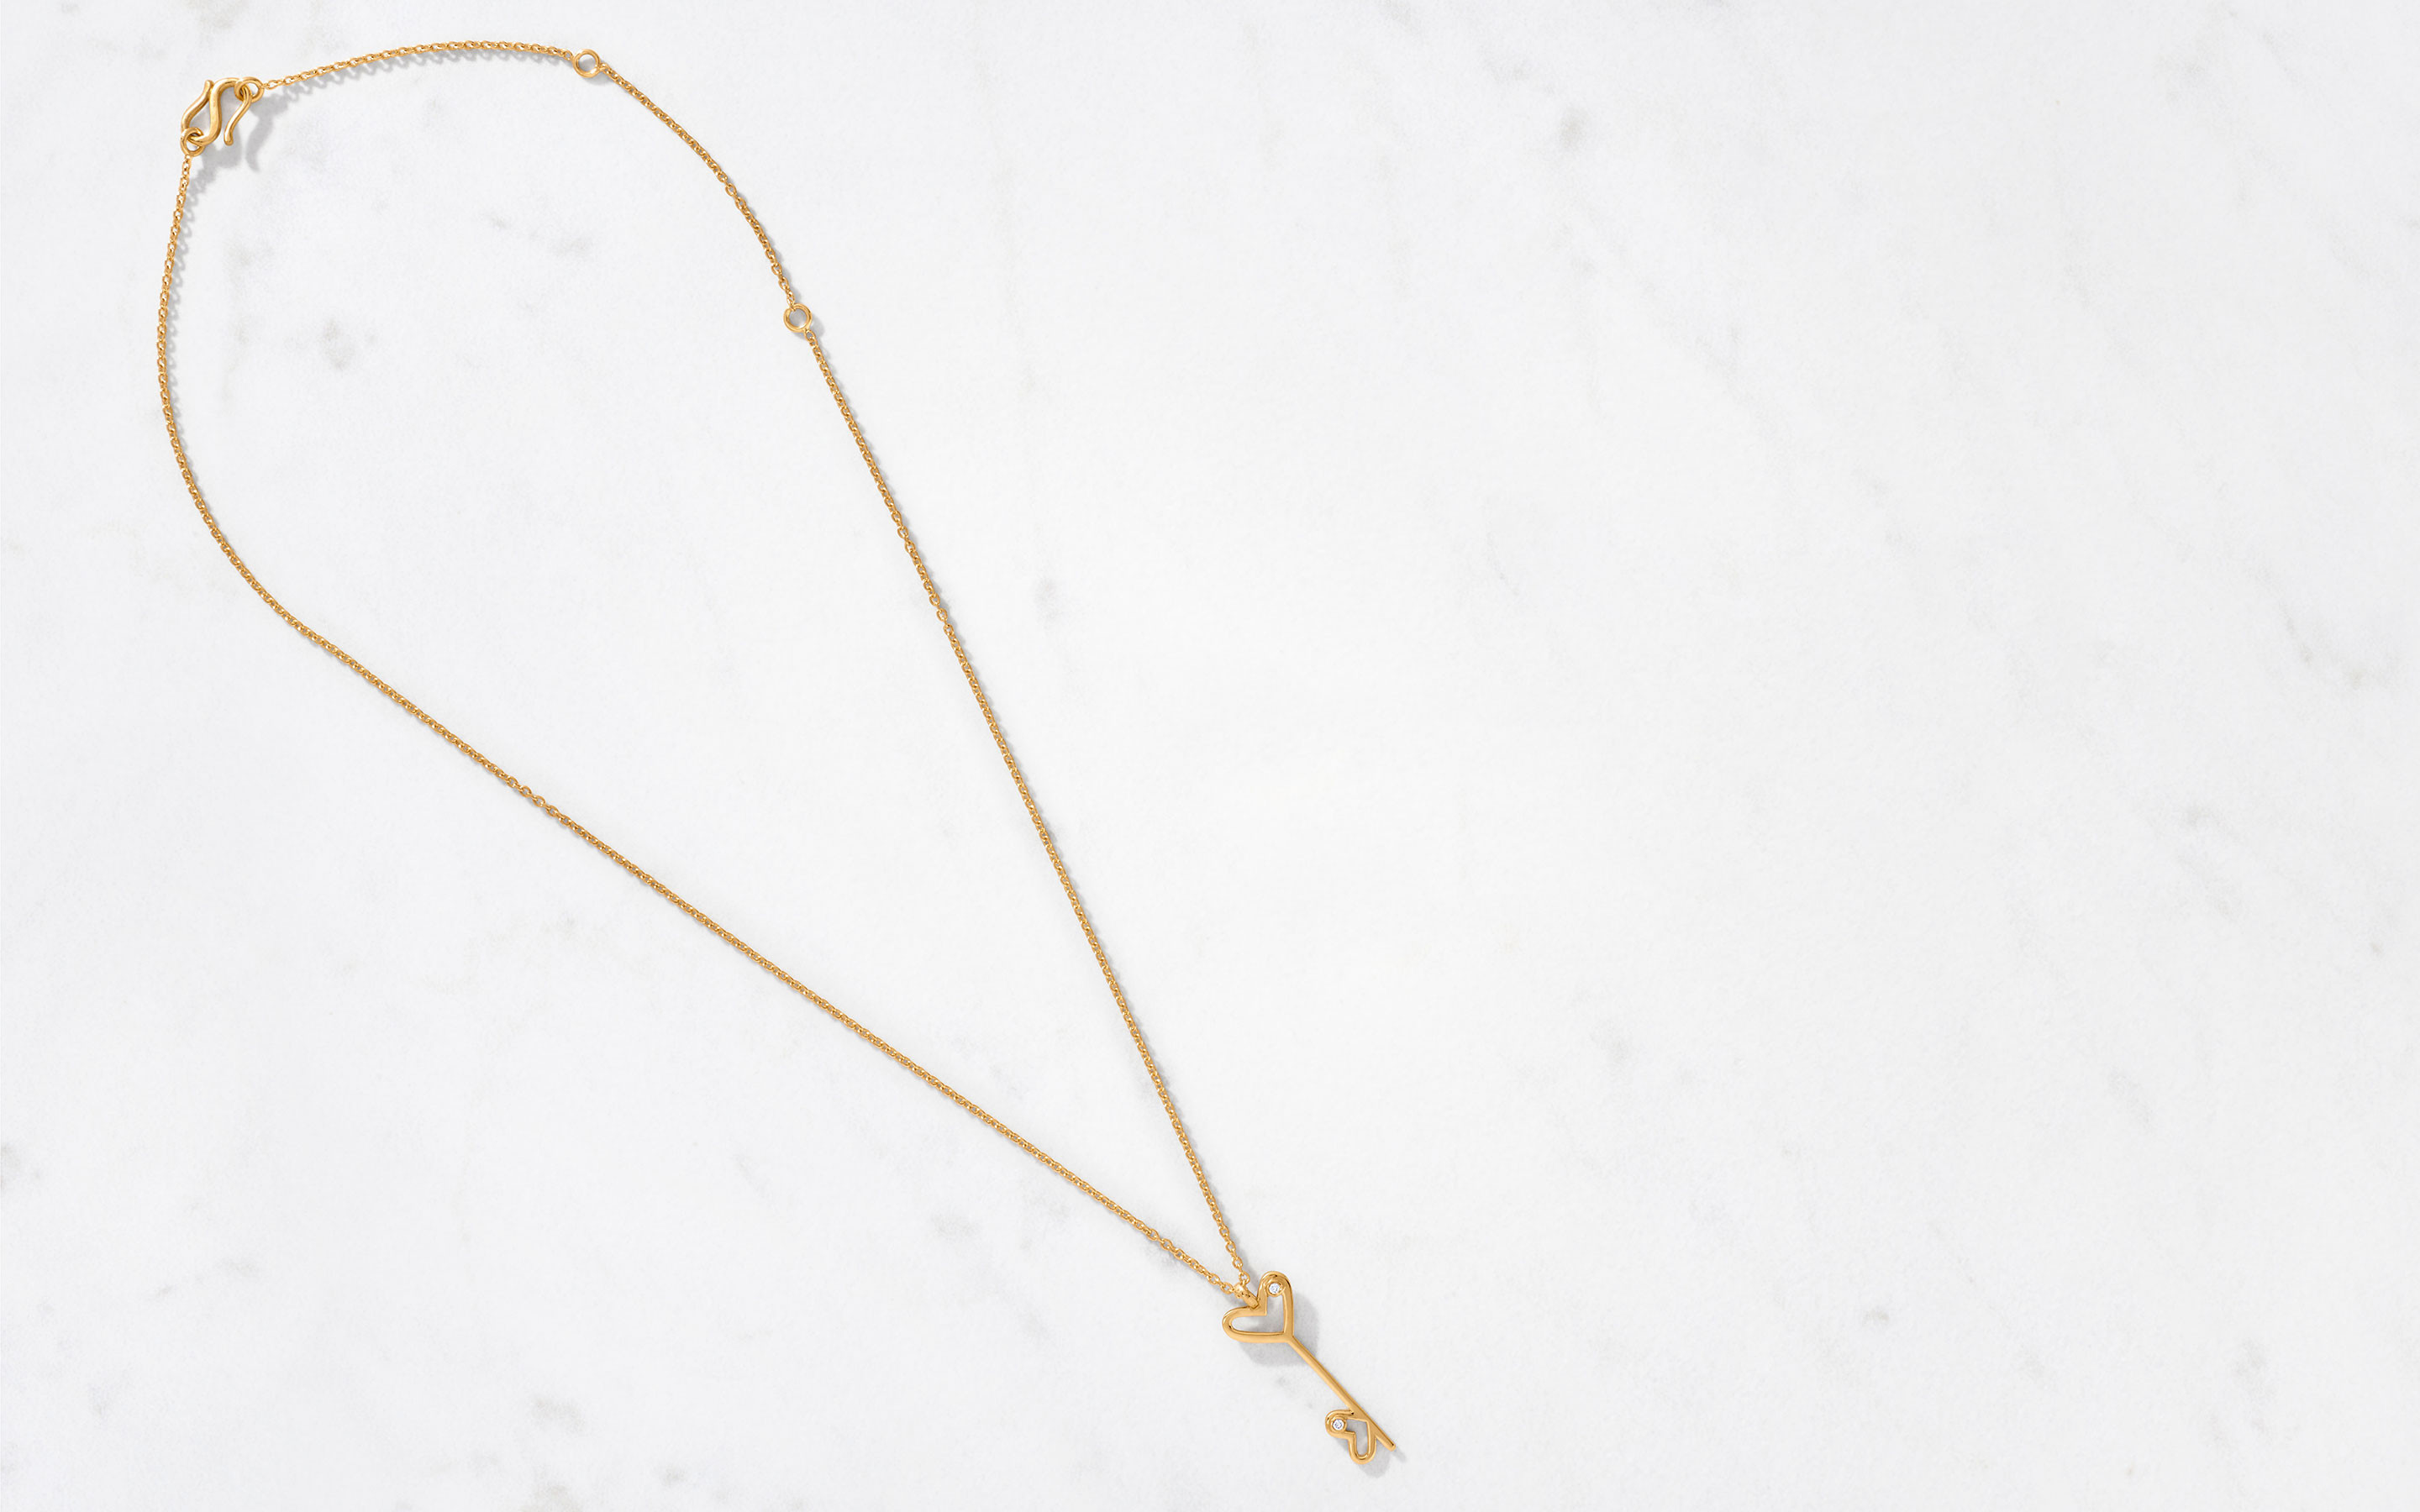 22 karat gold necklace with modern pendant in double heart key design